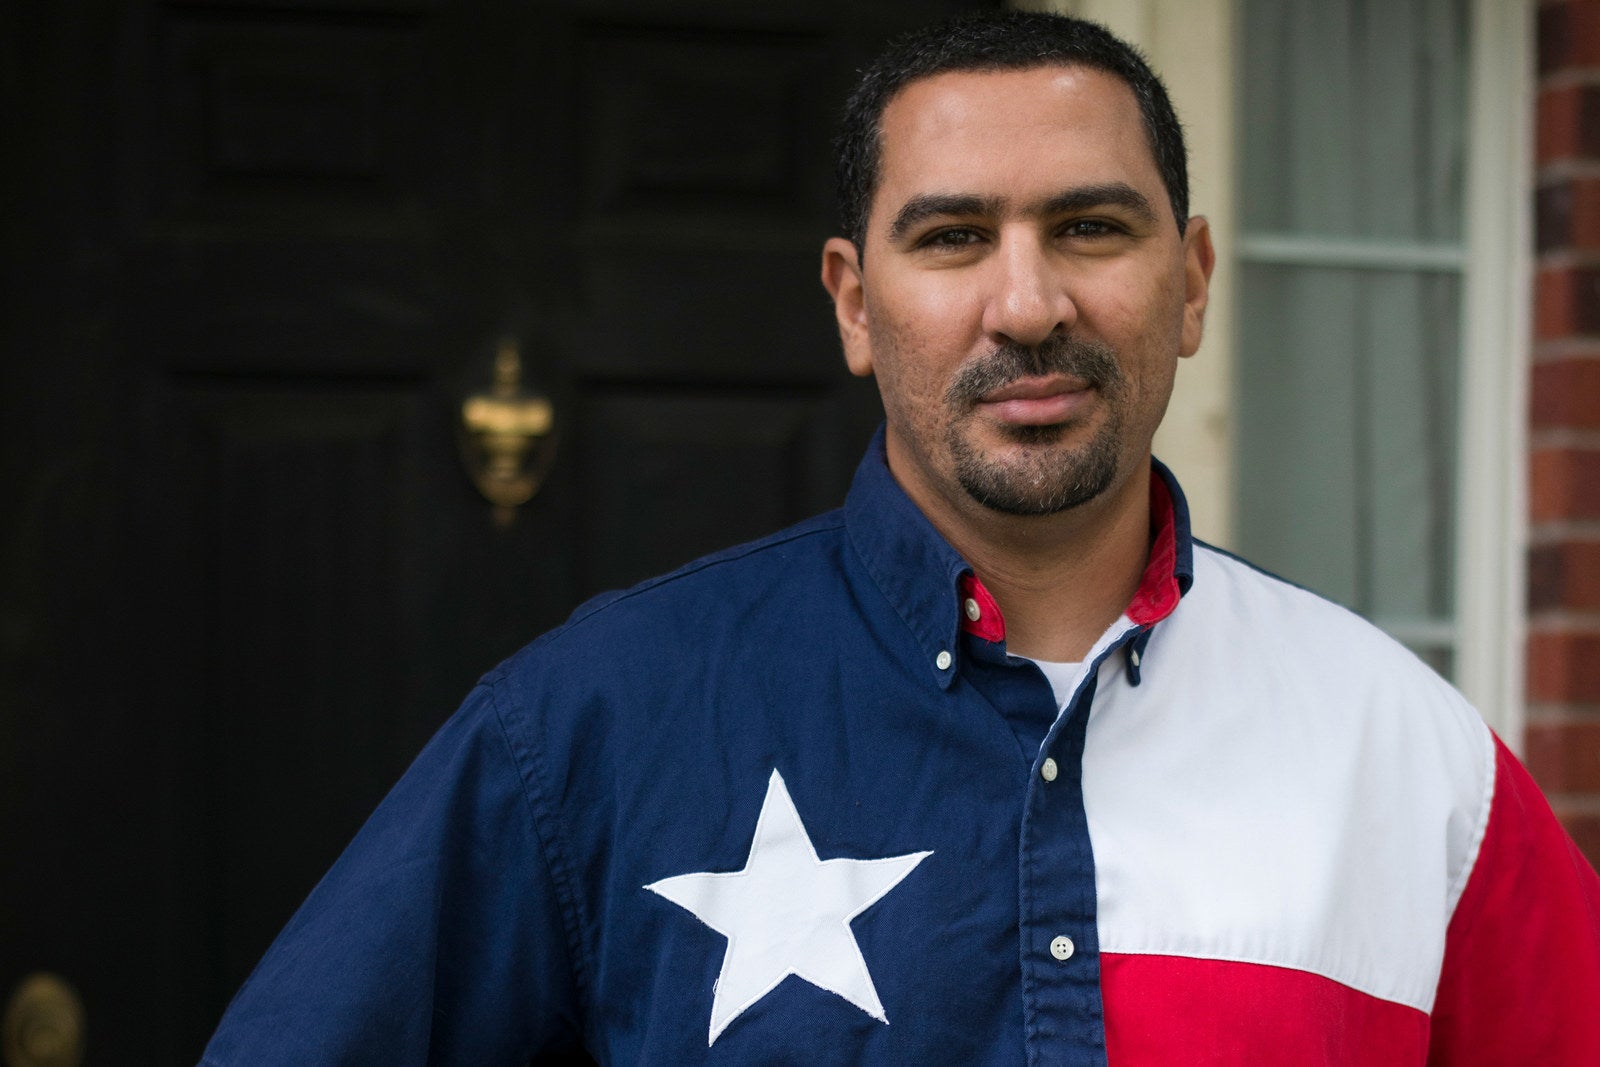 Mohamed Elibiary outside his home in Plano, Texas, in 2015.